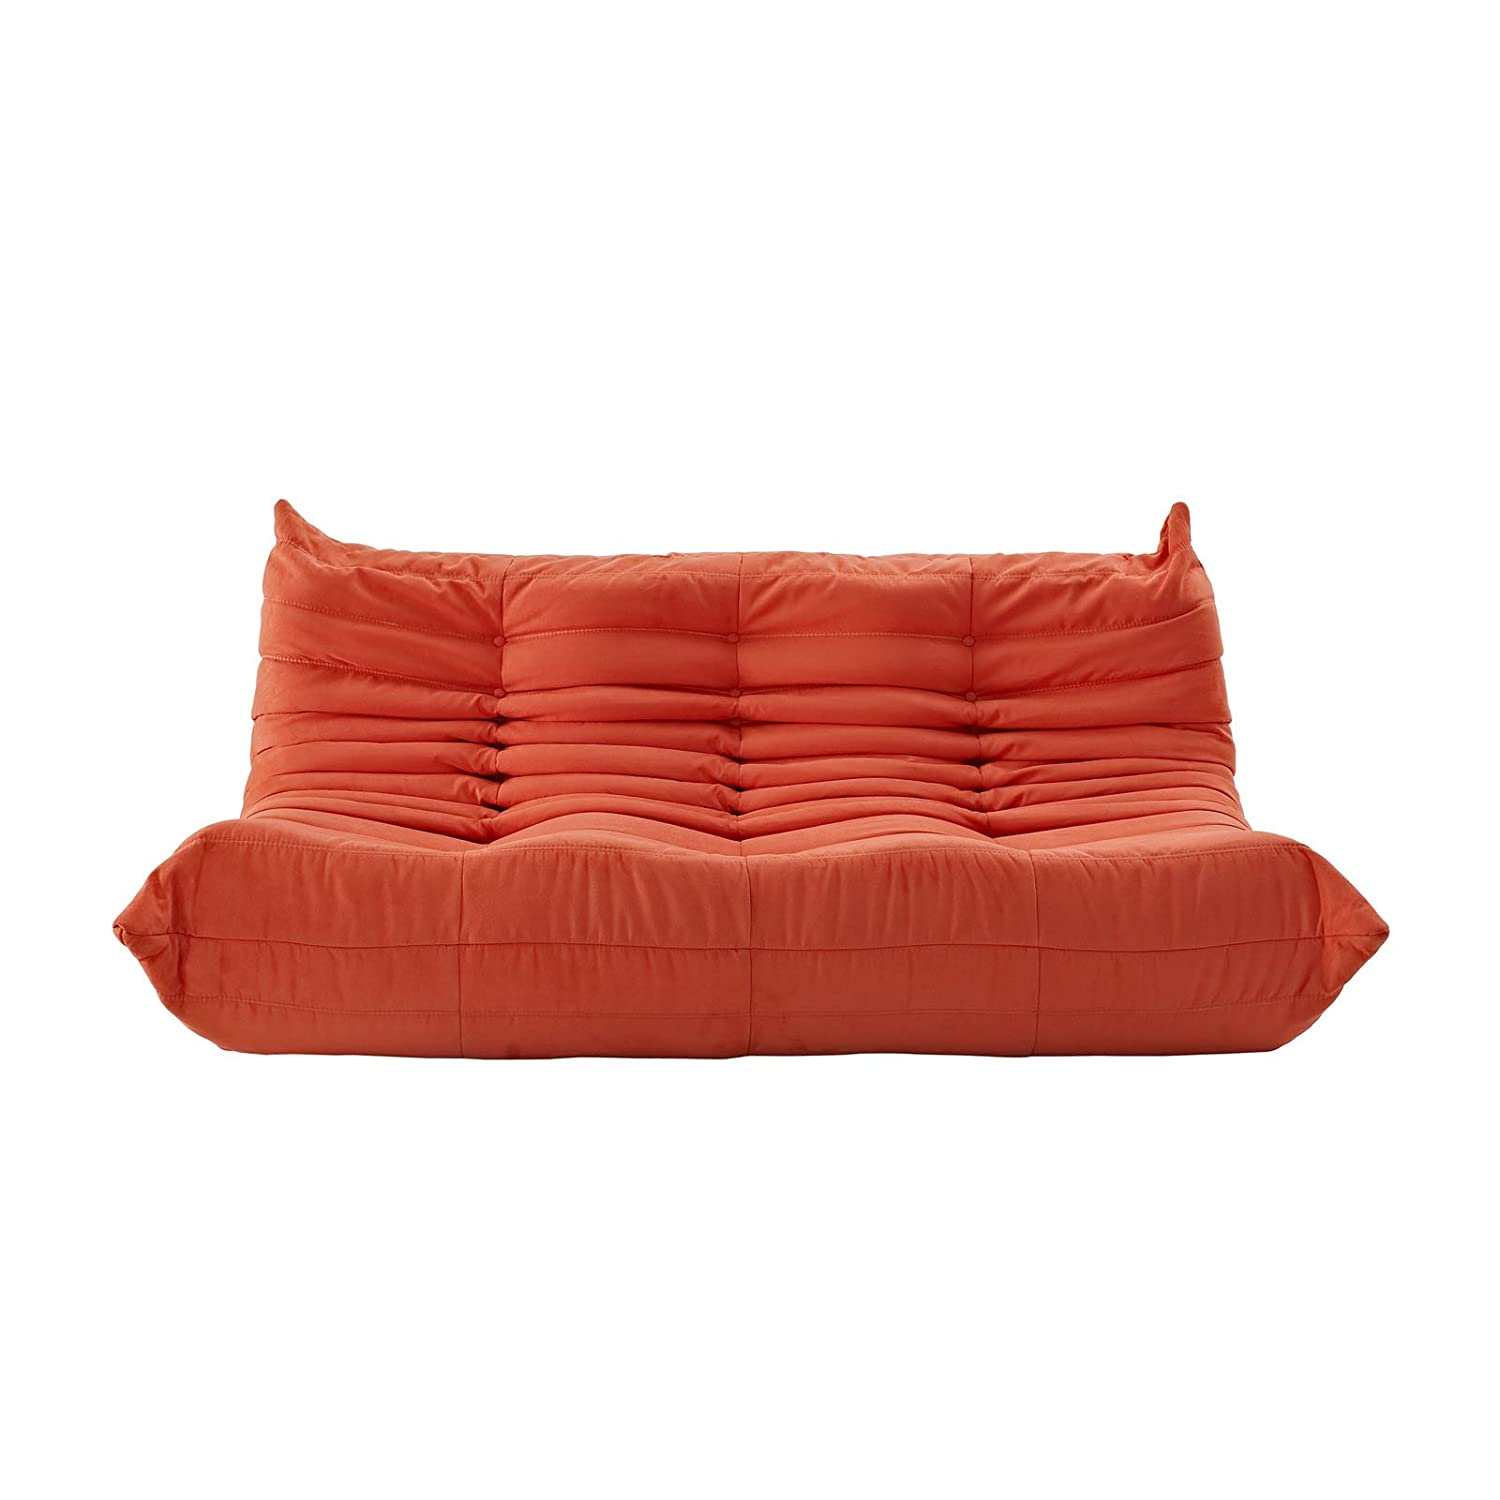 LexMod Waverunner Modular Sectional Sofa in Orange Amazon